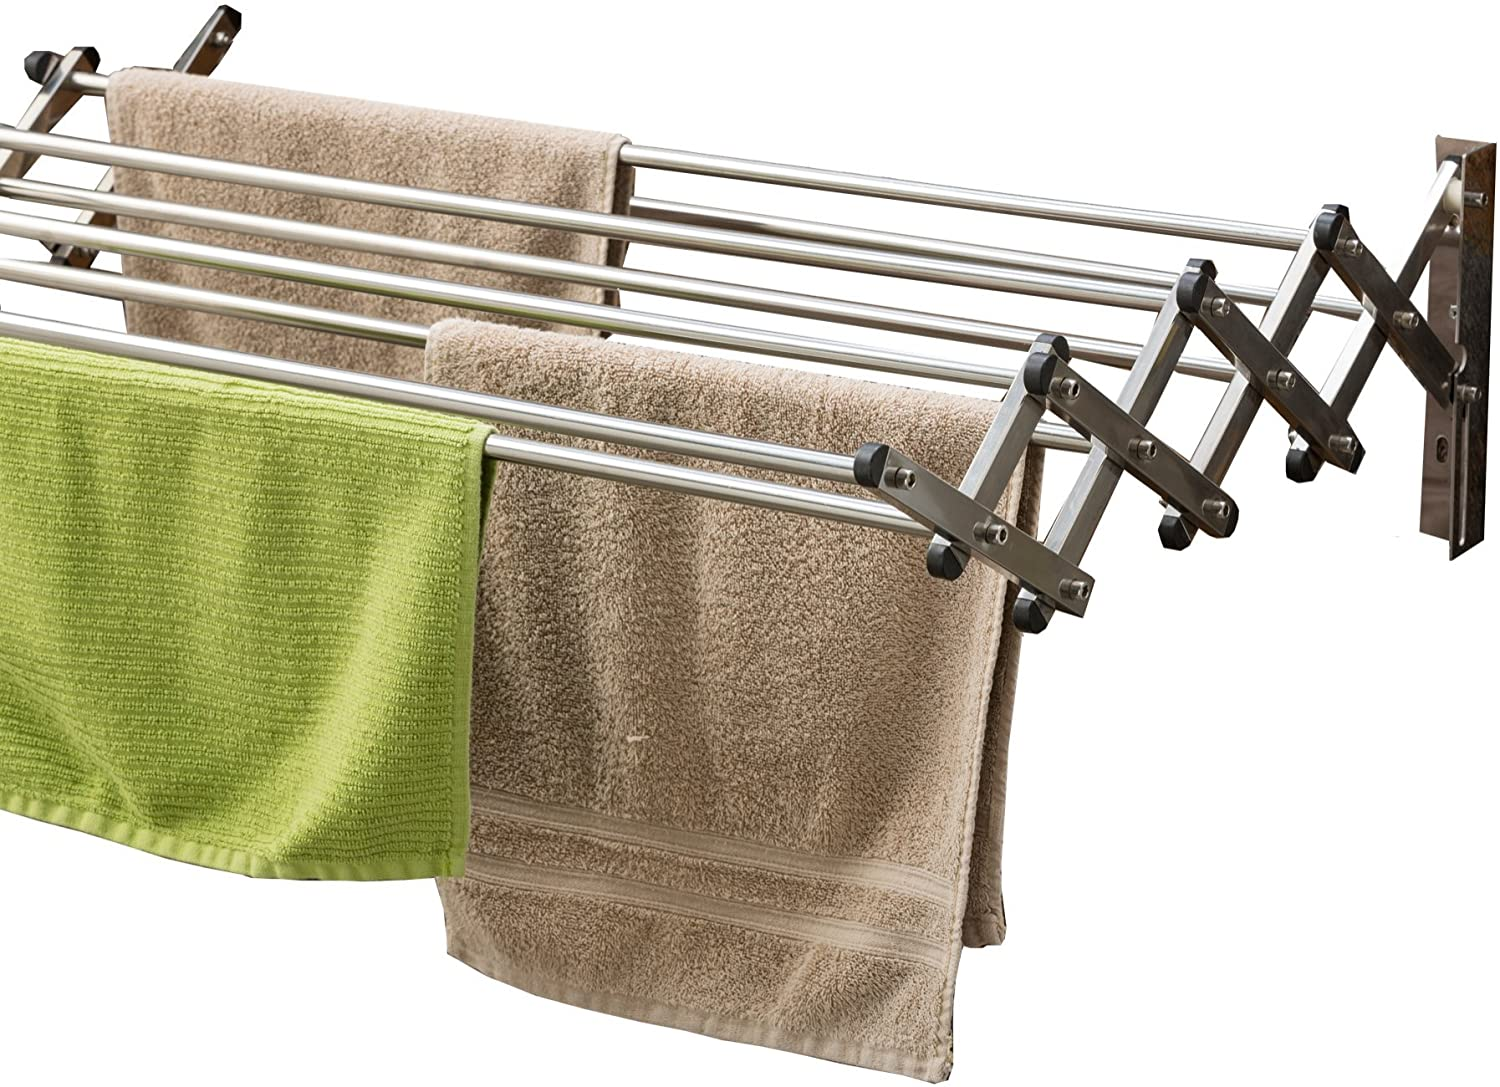 AERO W Racks Stainless Steel Wall Mounted Drying Rack